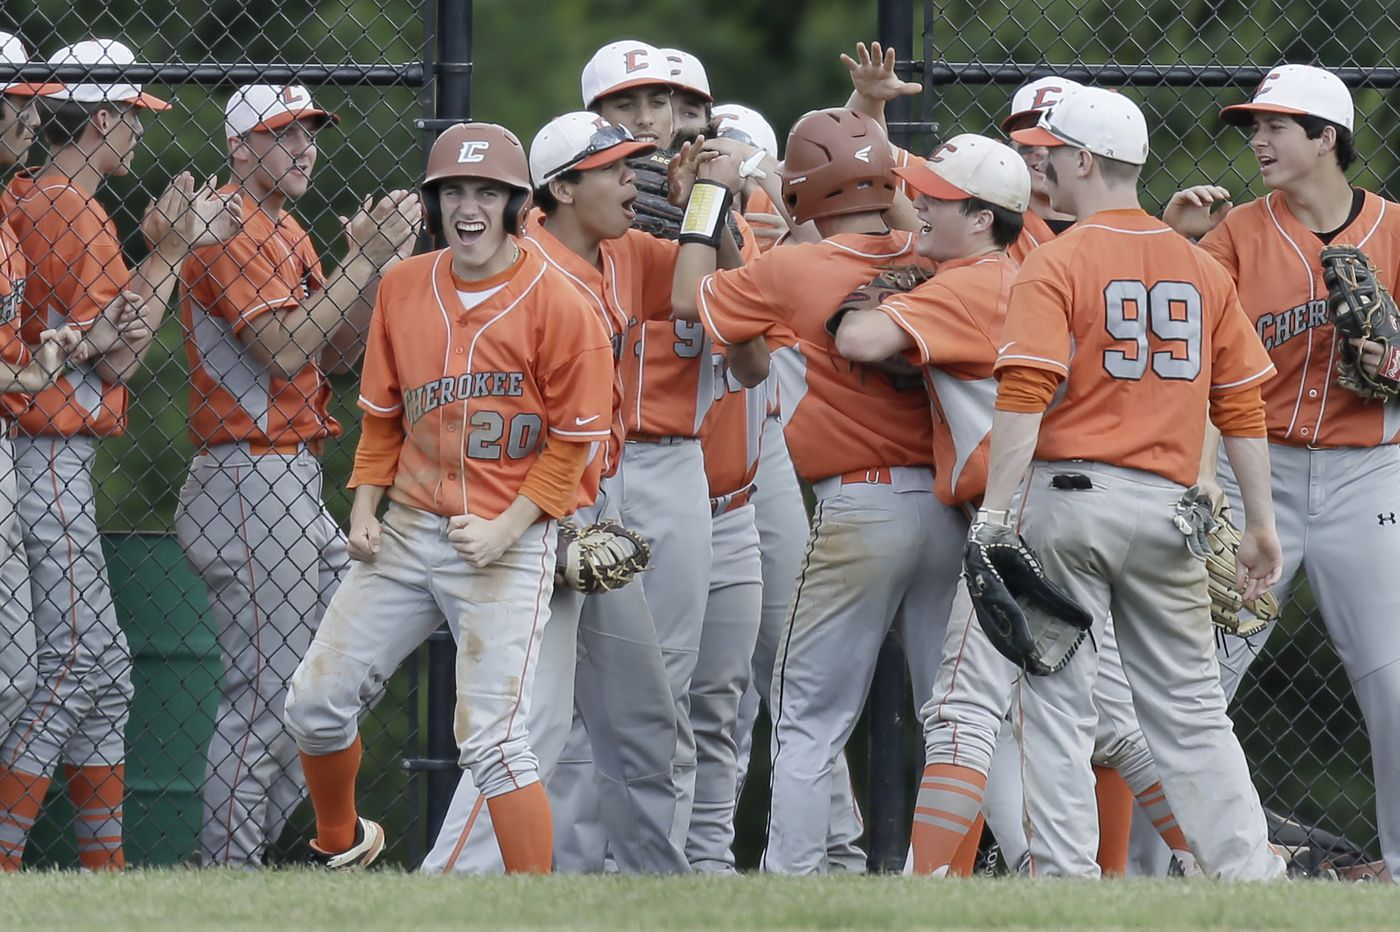 Underdog Cherokee thumps Clearview, 14-2, in baseball playoffs